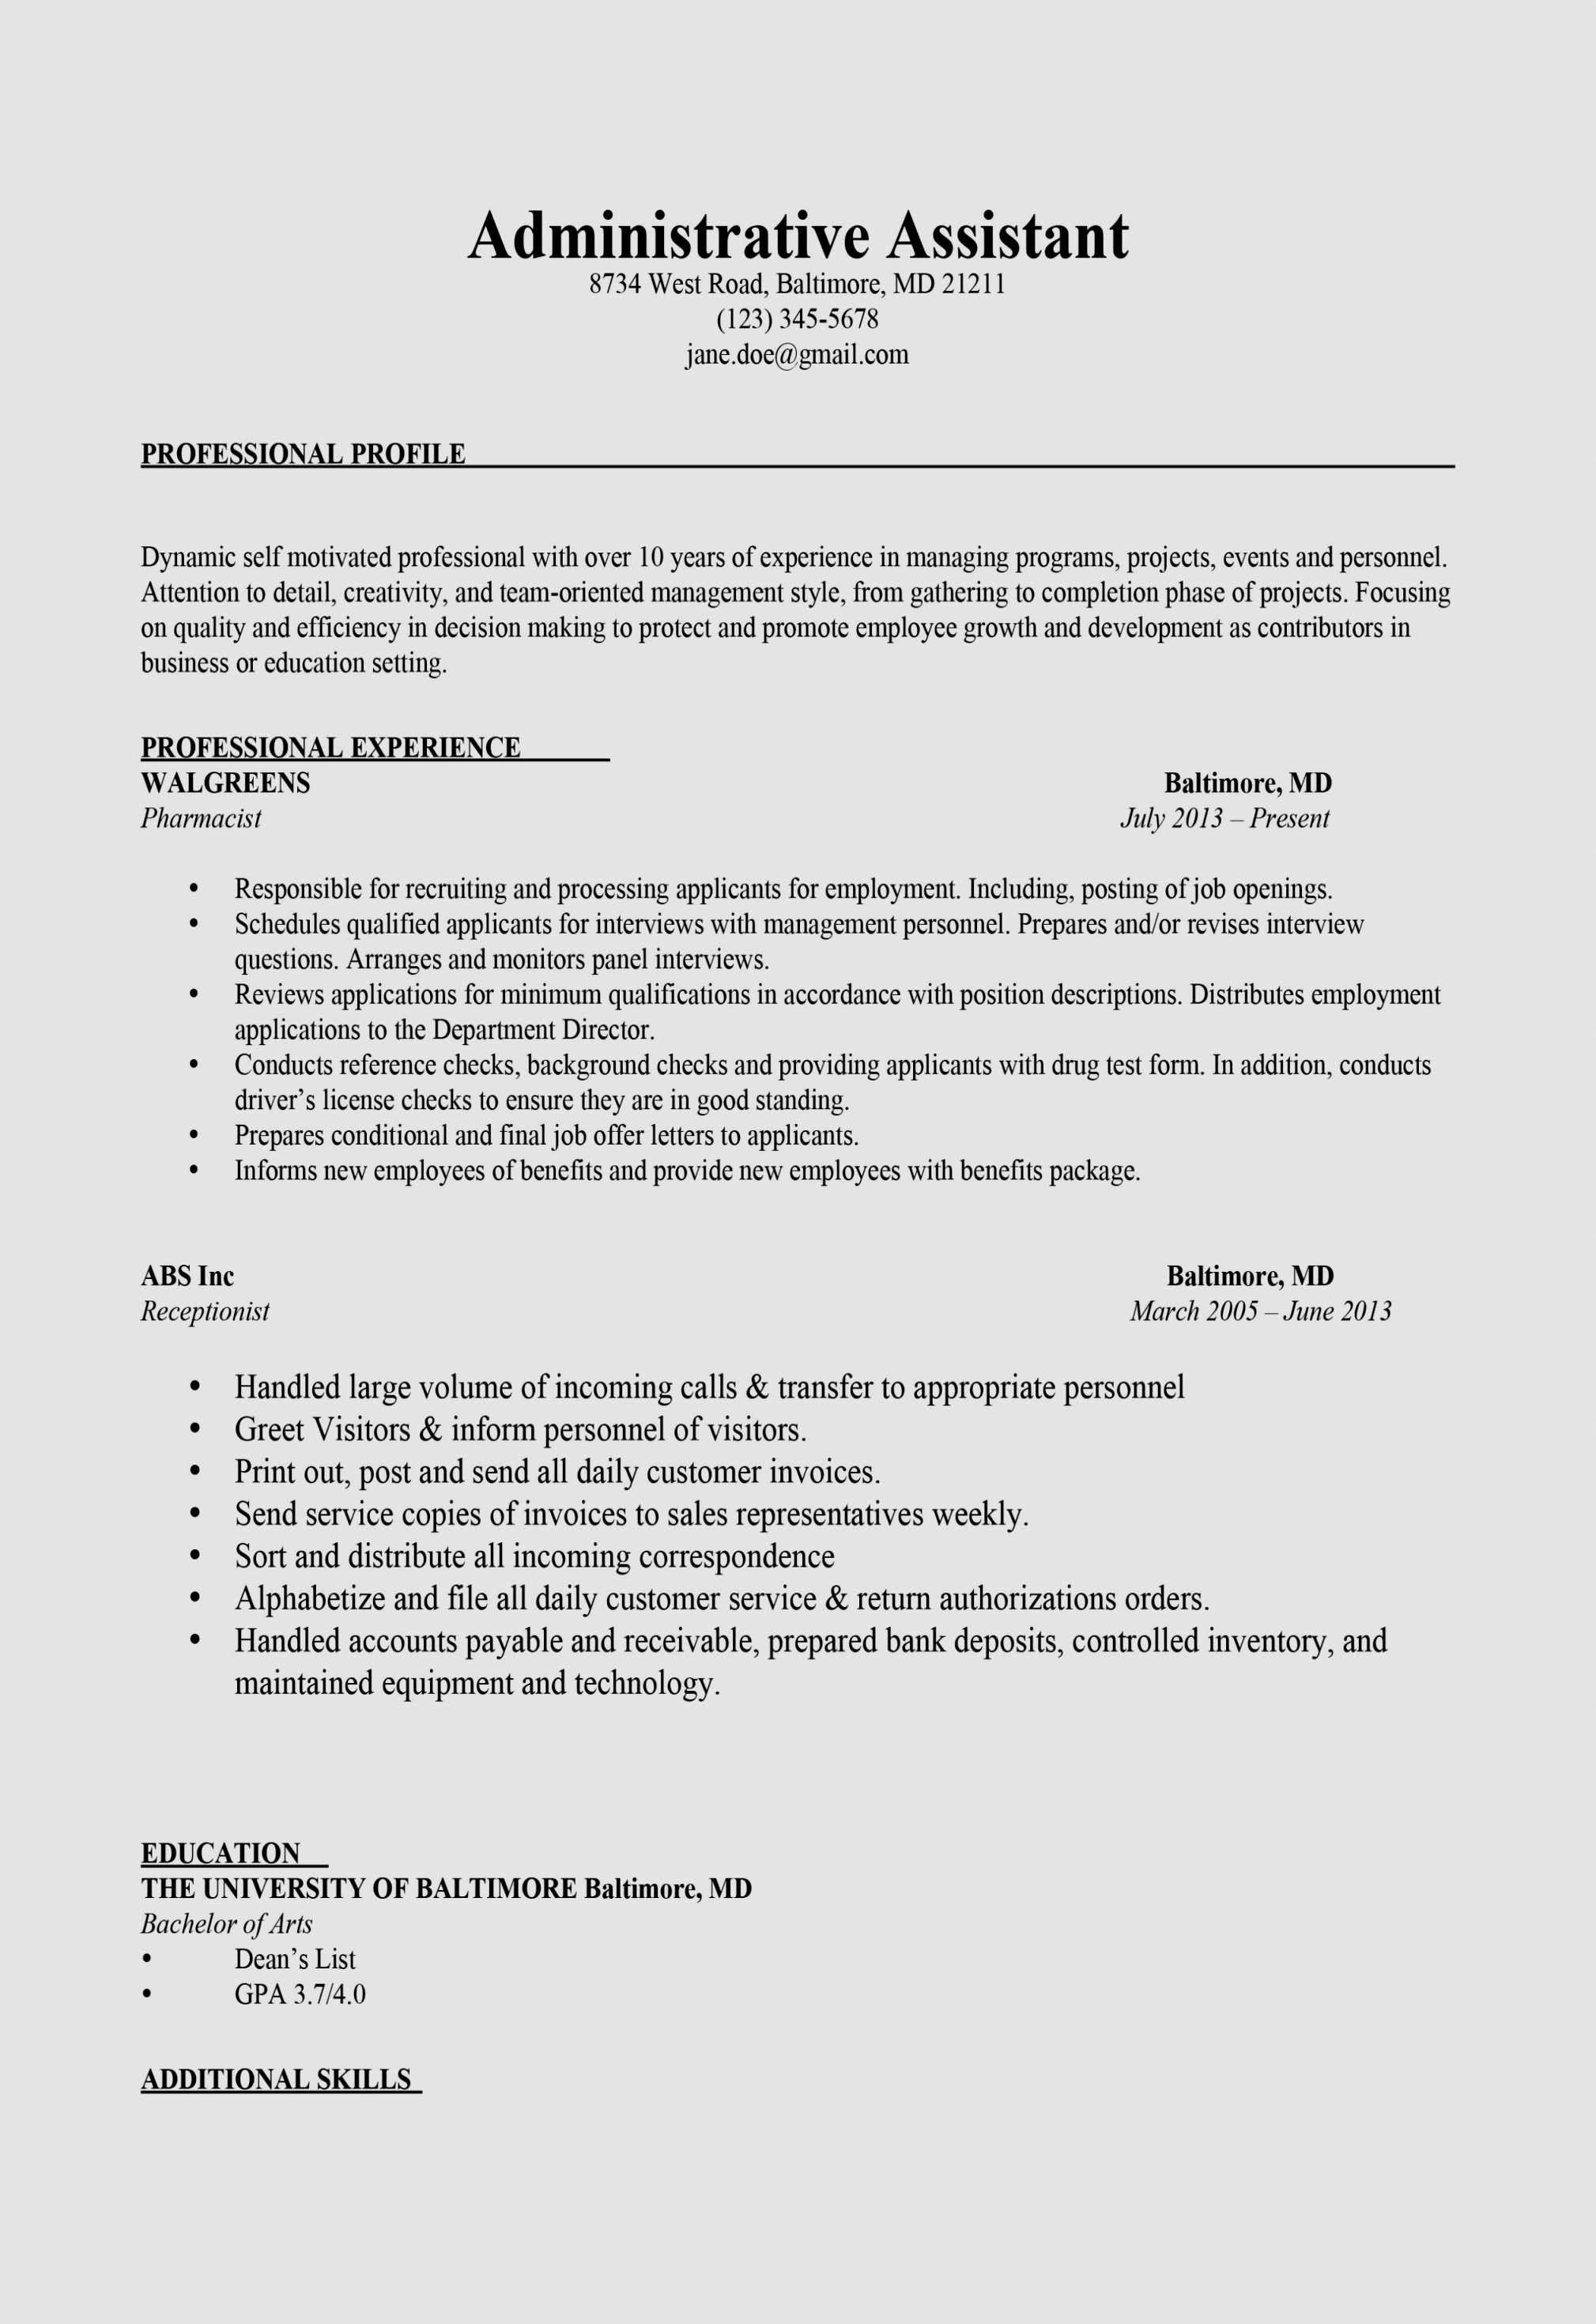 administrative assistant resume examples 2018 awesome 17 staff nurse format nanny cv template download medical interpreter duties